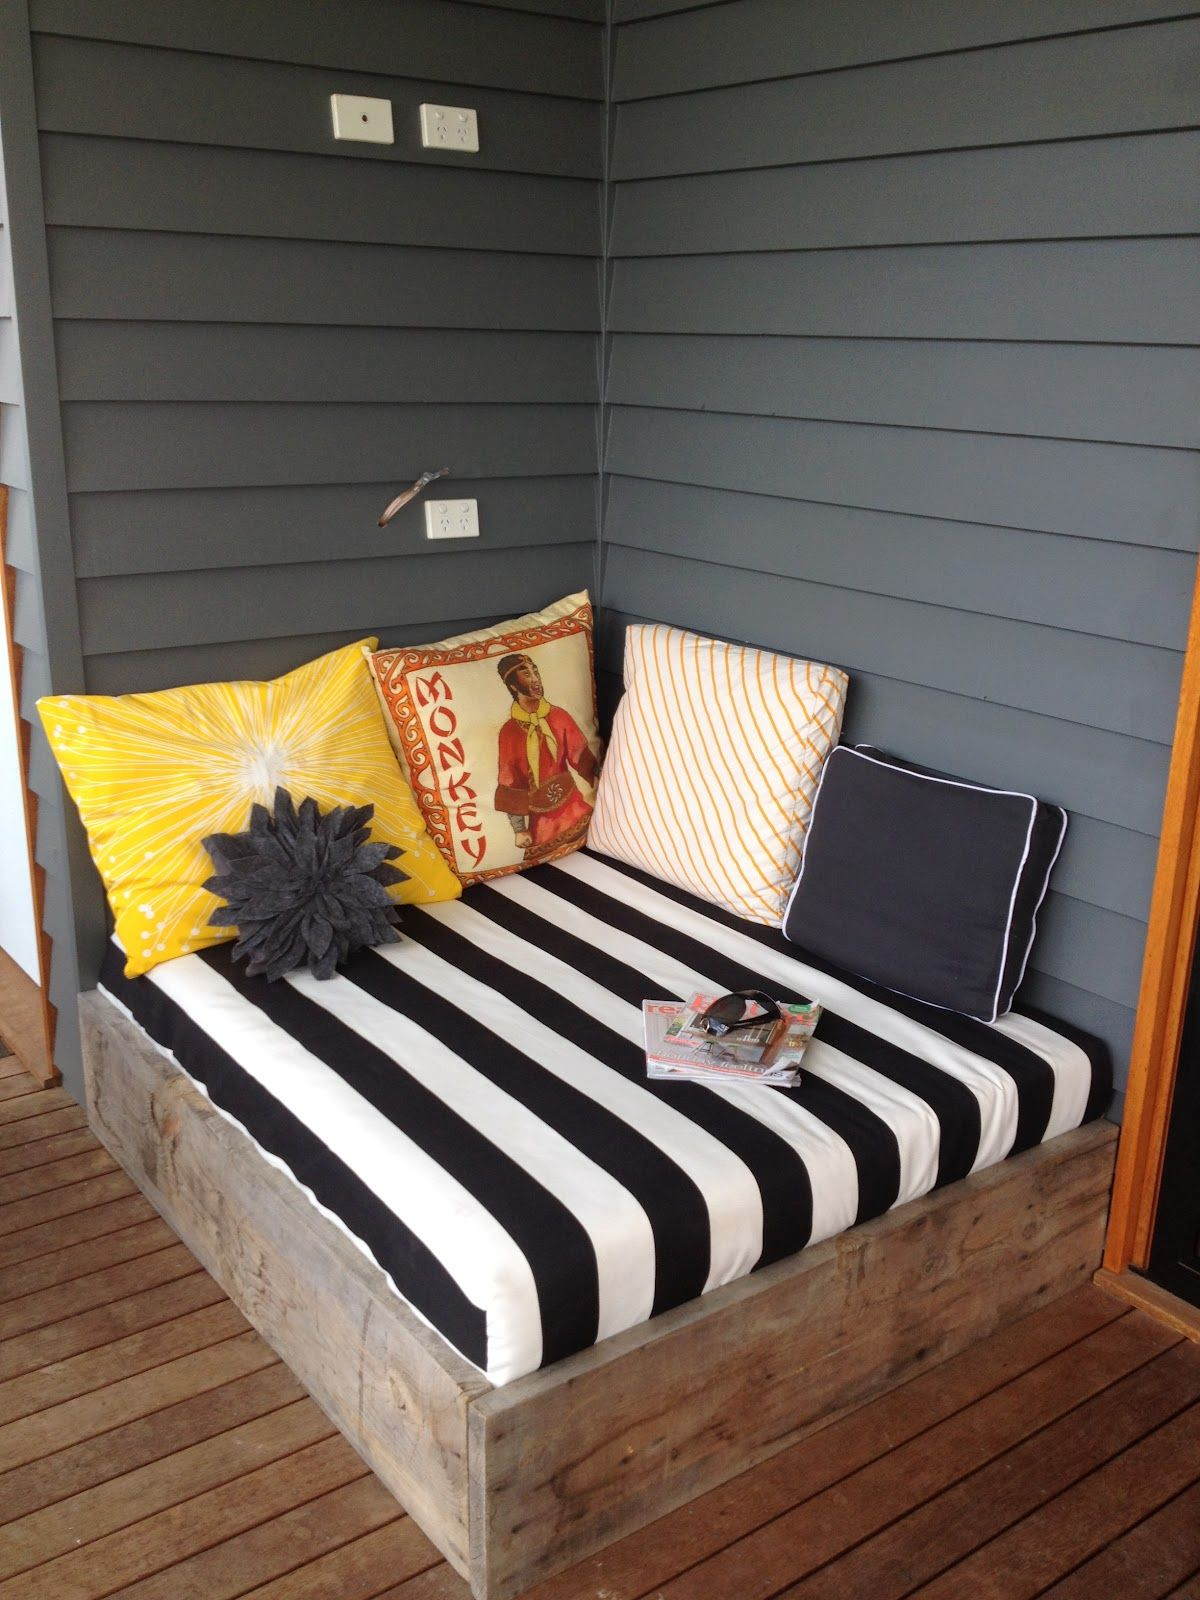 Outdoor bed tumblr - Adorable Diy Backyard Bed Now I Just Need A Backyard